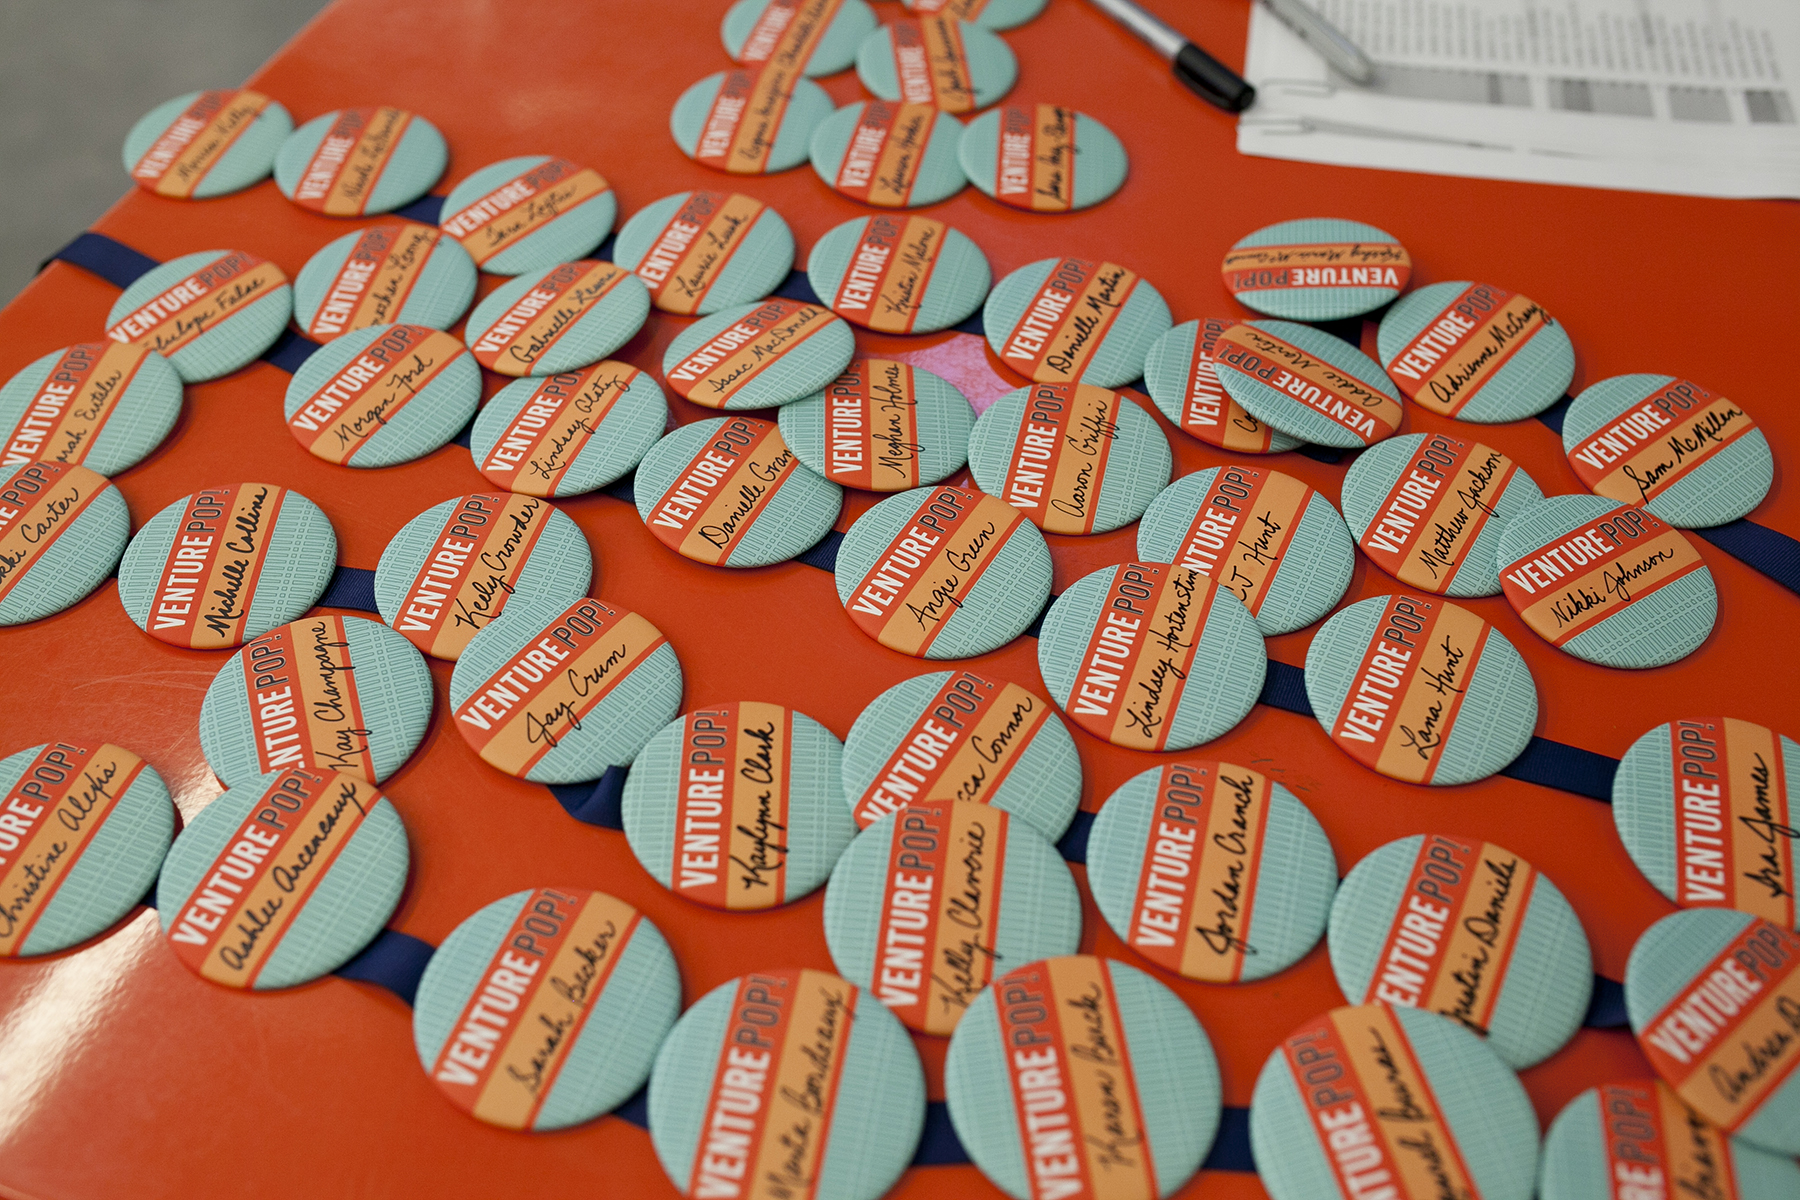 event name tag buttons